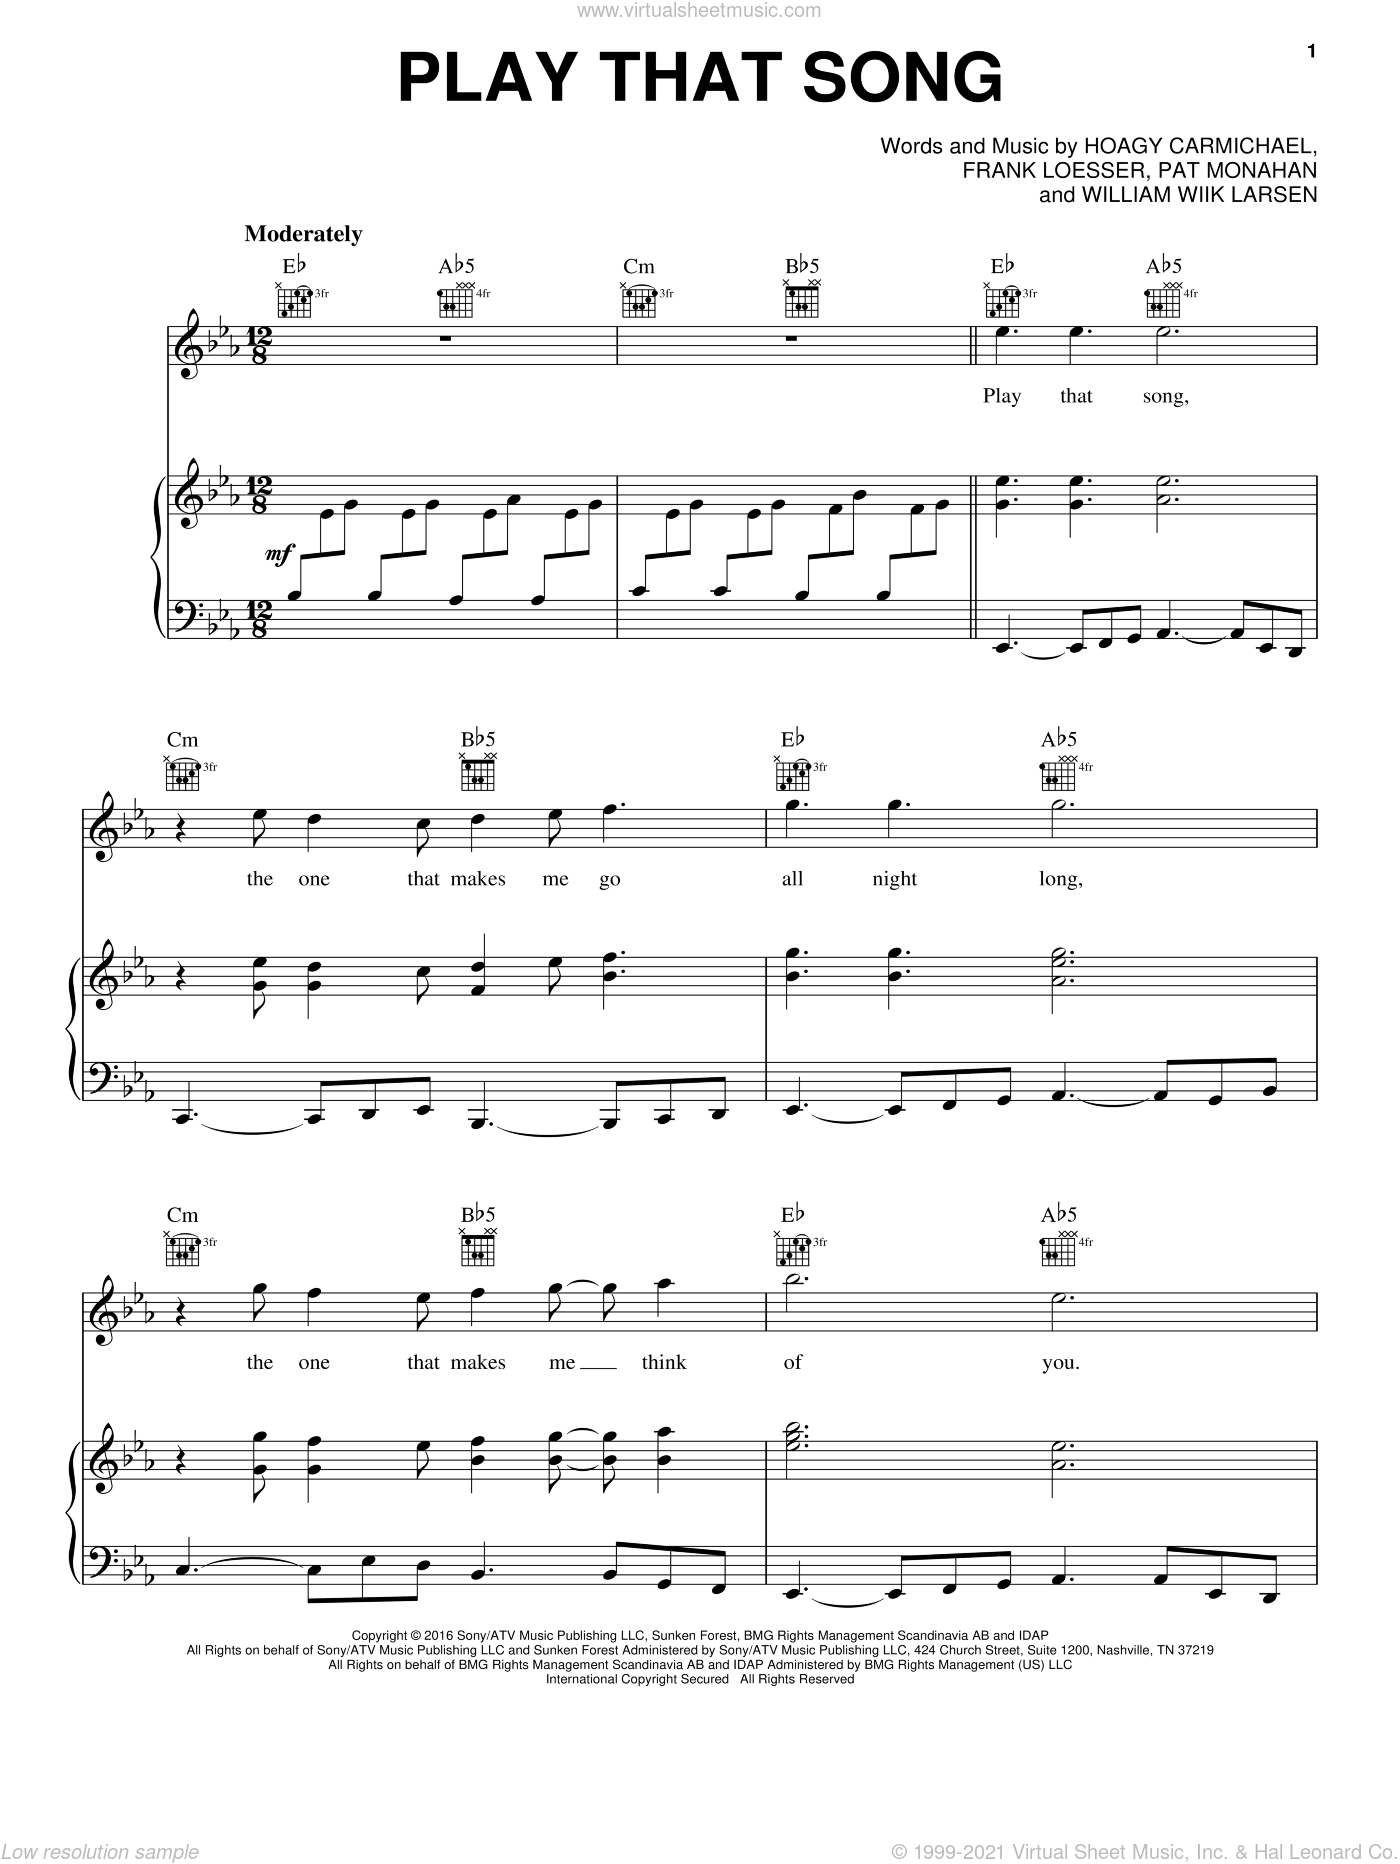 Play That Song sheet music for voice, piano or guitar by Train, Frank Loesser, Hoagy Carmichael, Pat Monahan and William Larsen, intermediate skill level